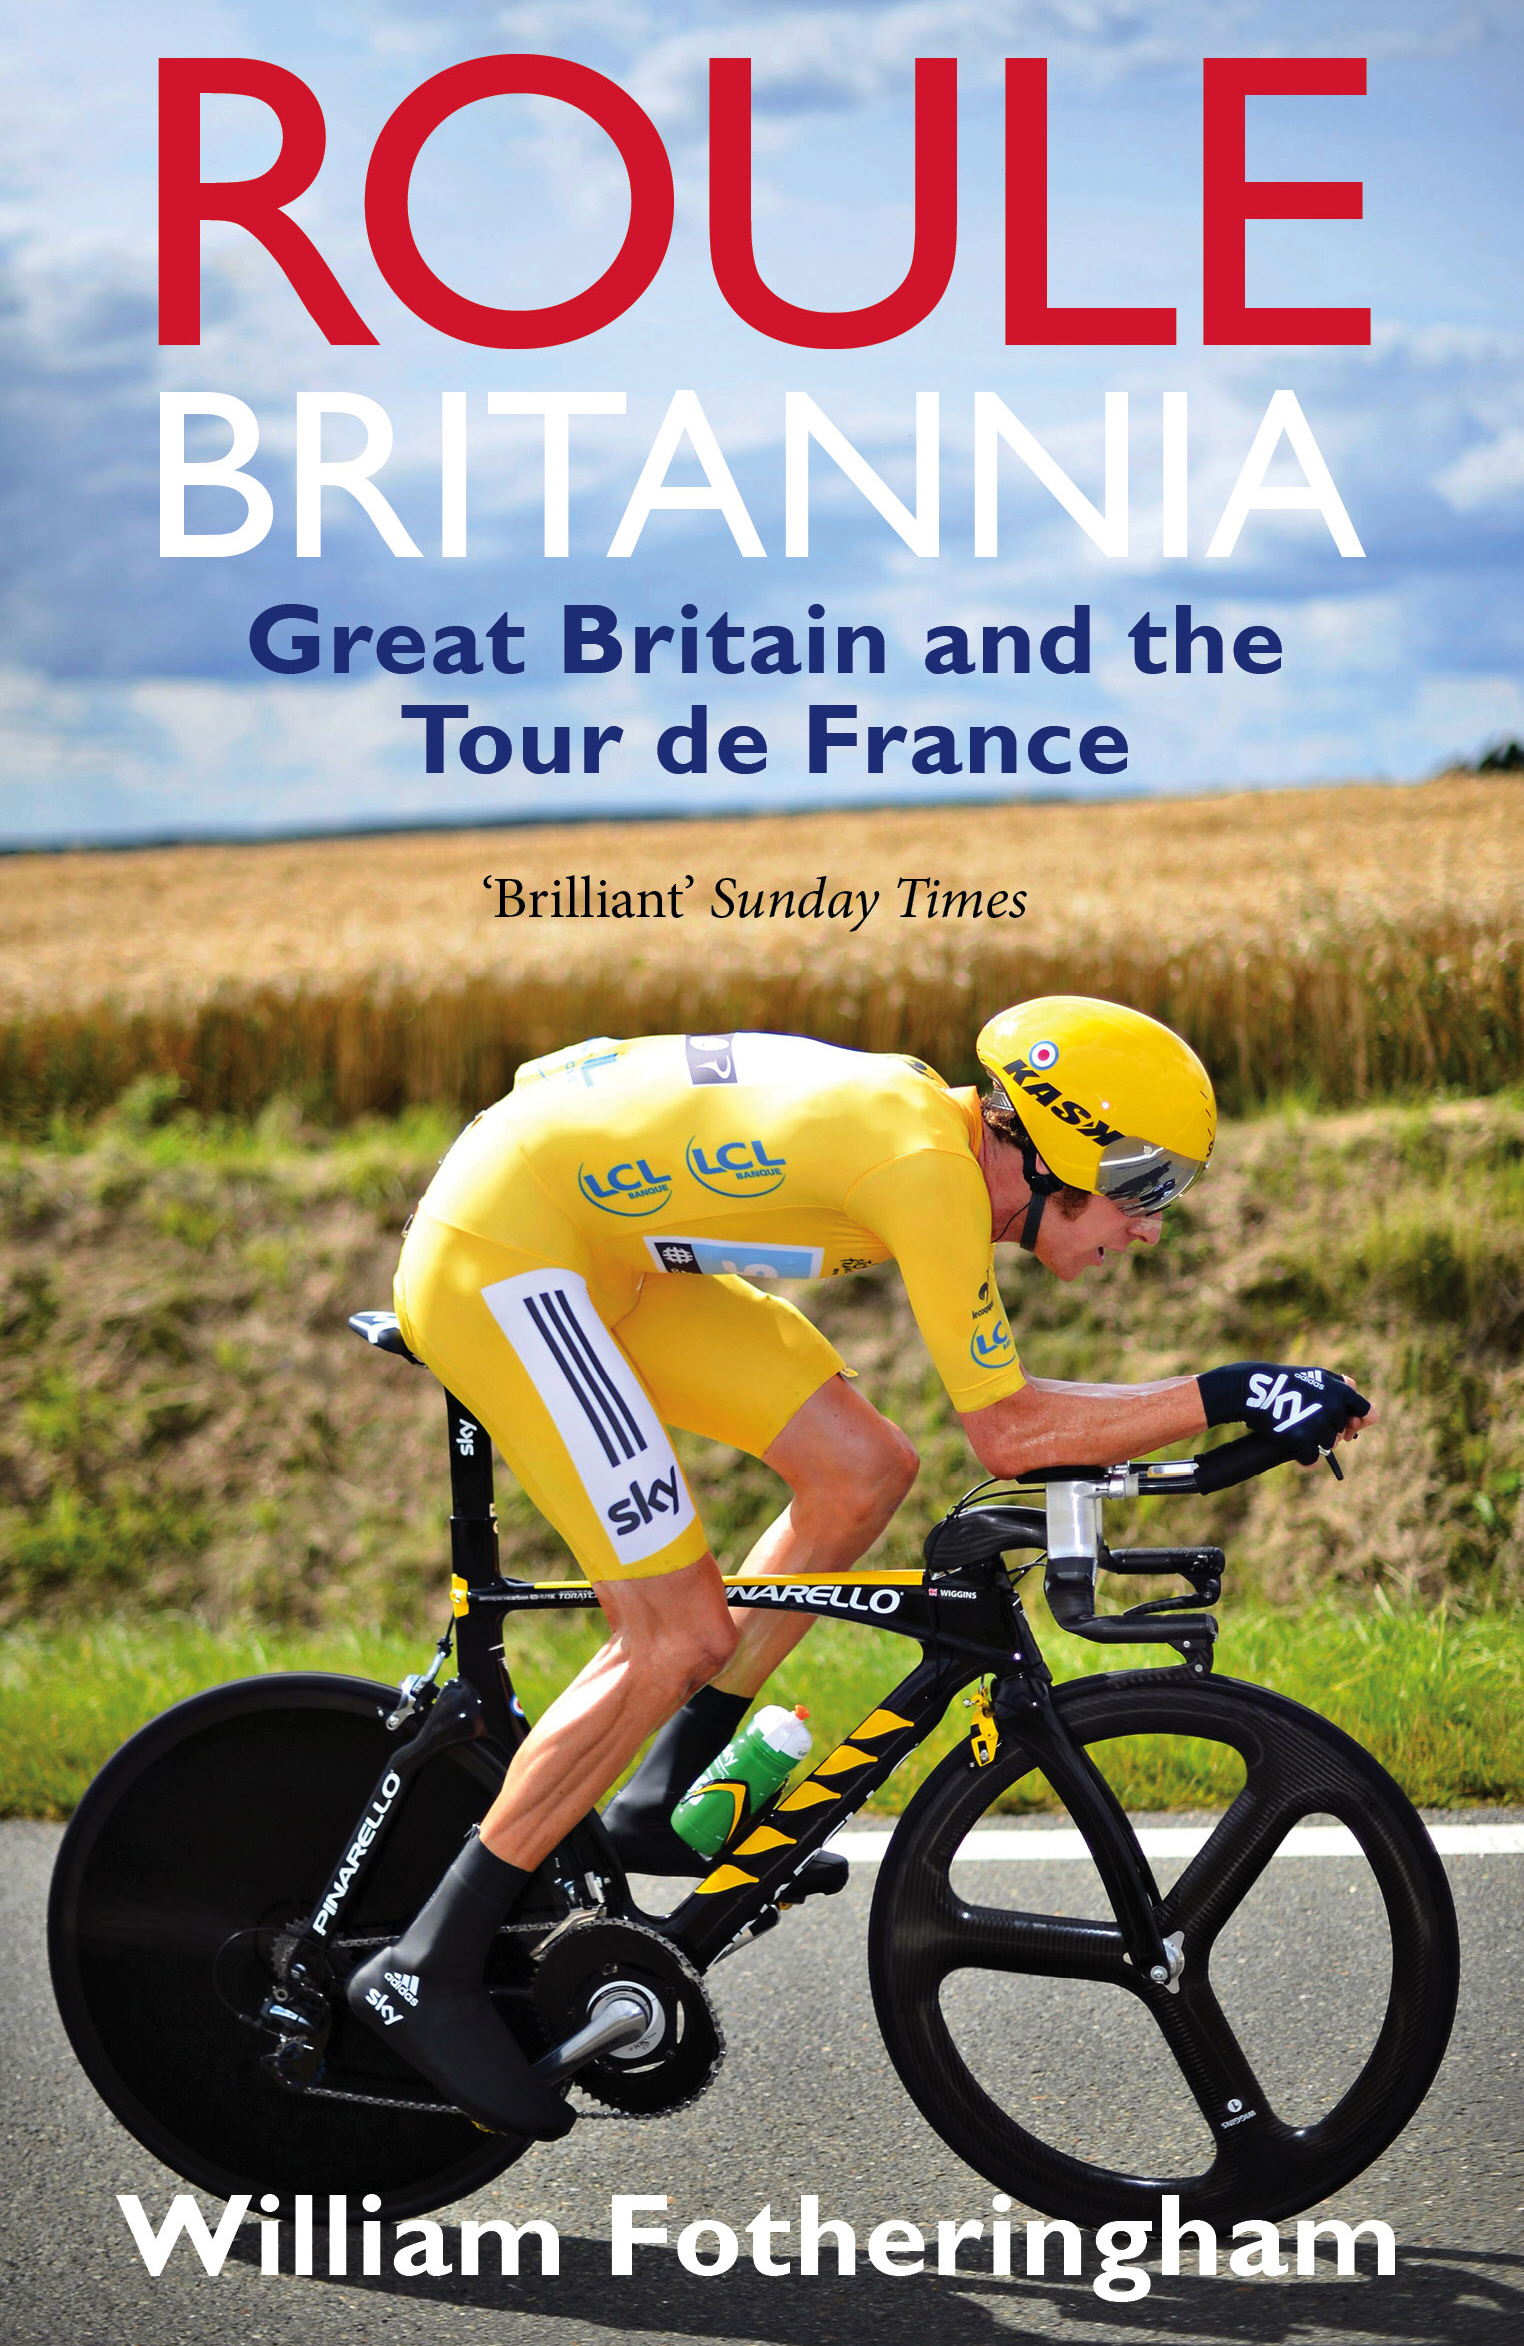 Roule Britannia Great Britain and the Tour de France